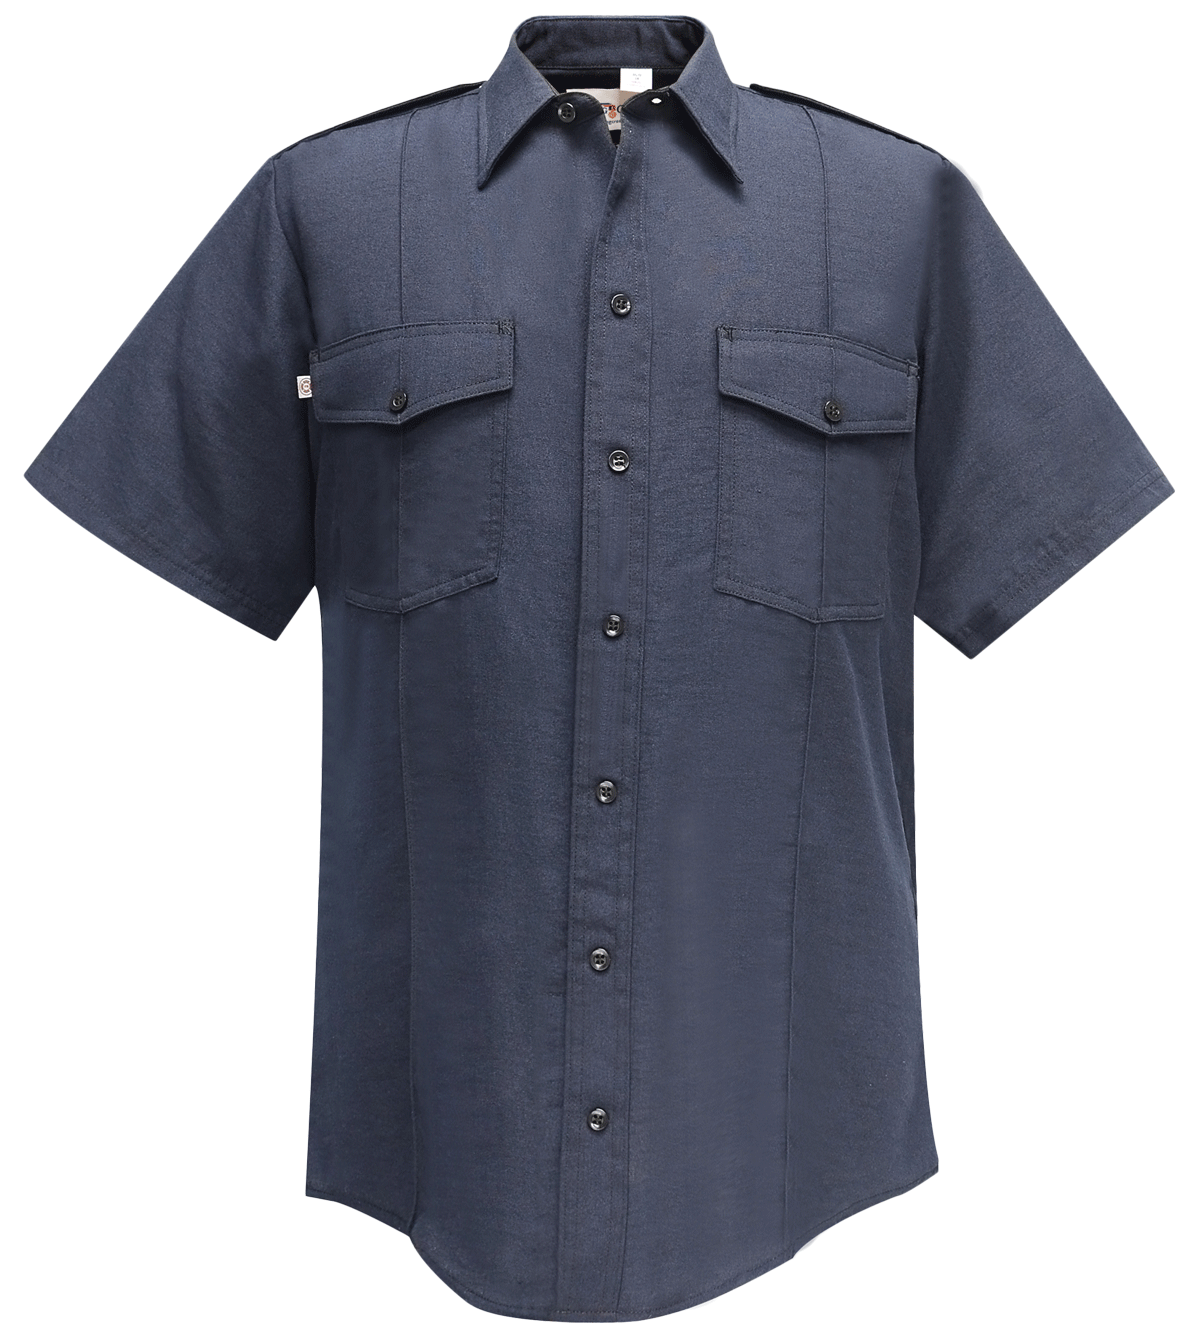 Flying Cross S/S Nomex Shirt